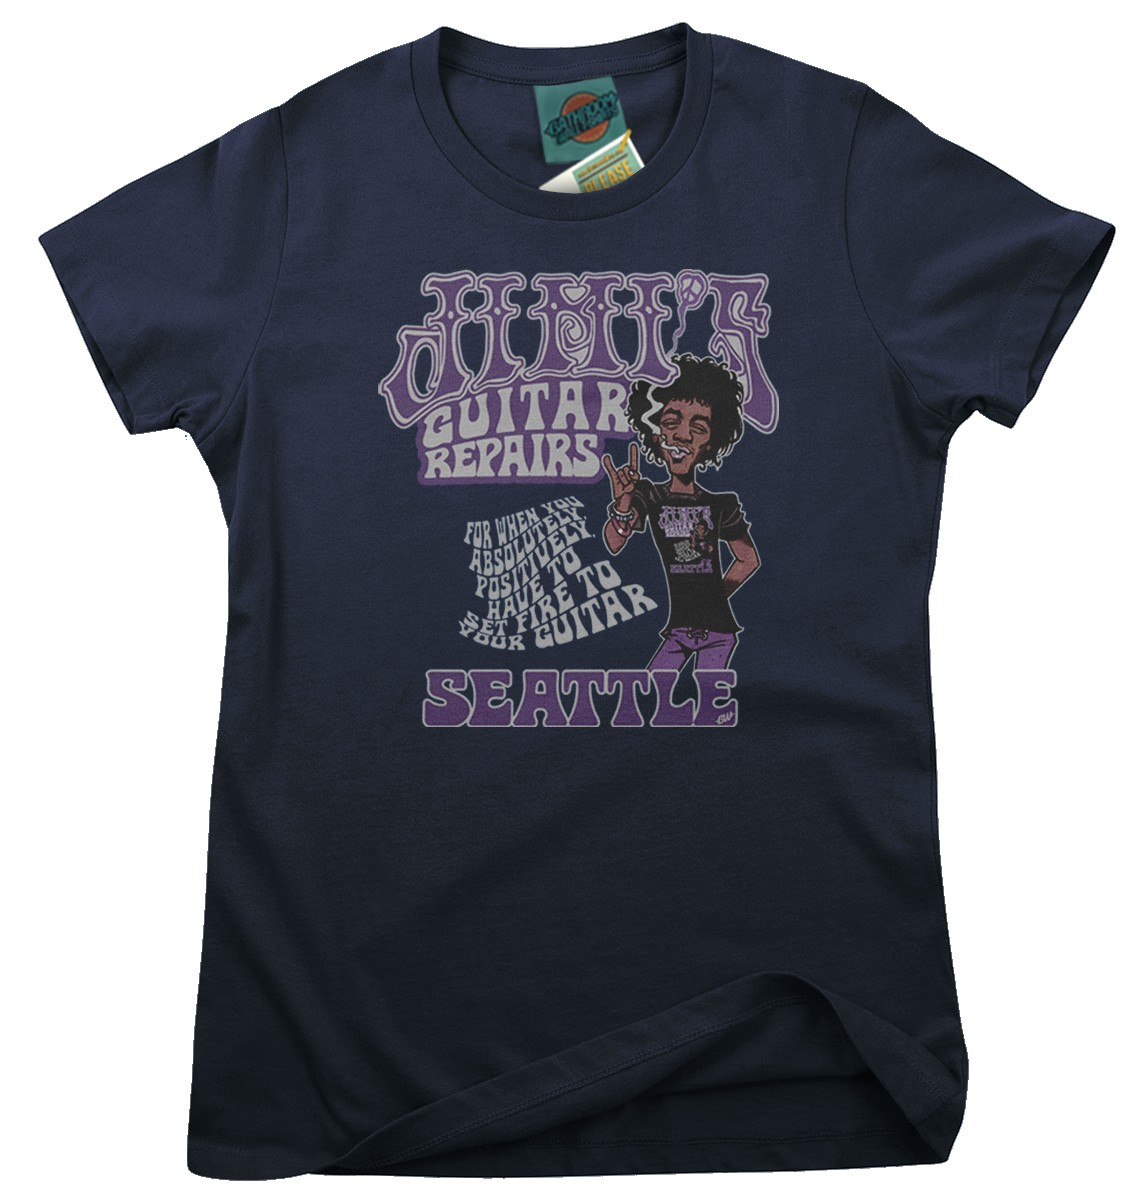 Jimi-Hendrix-inspired-Jimis-Guitar-Repair-Shop-Femmes-T-Shirt